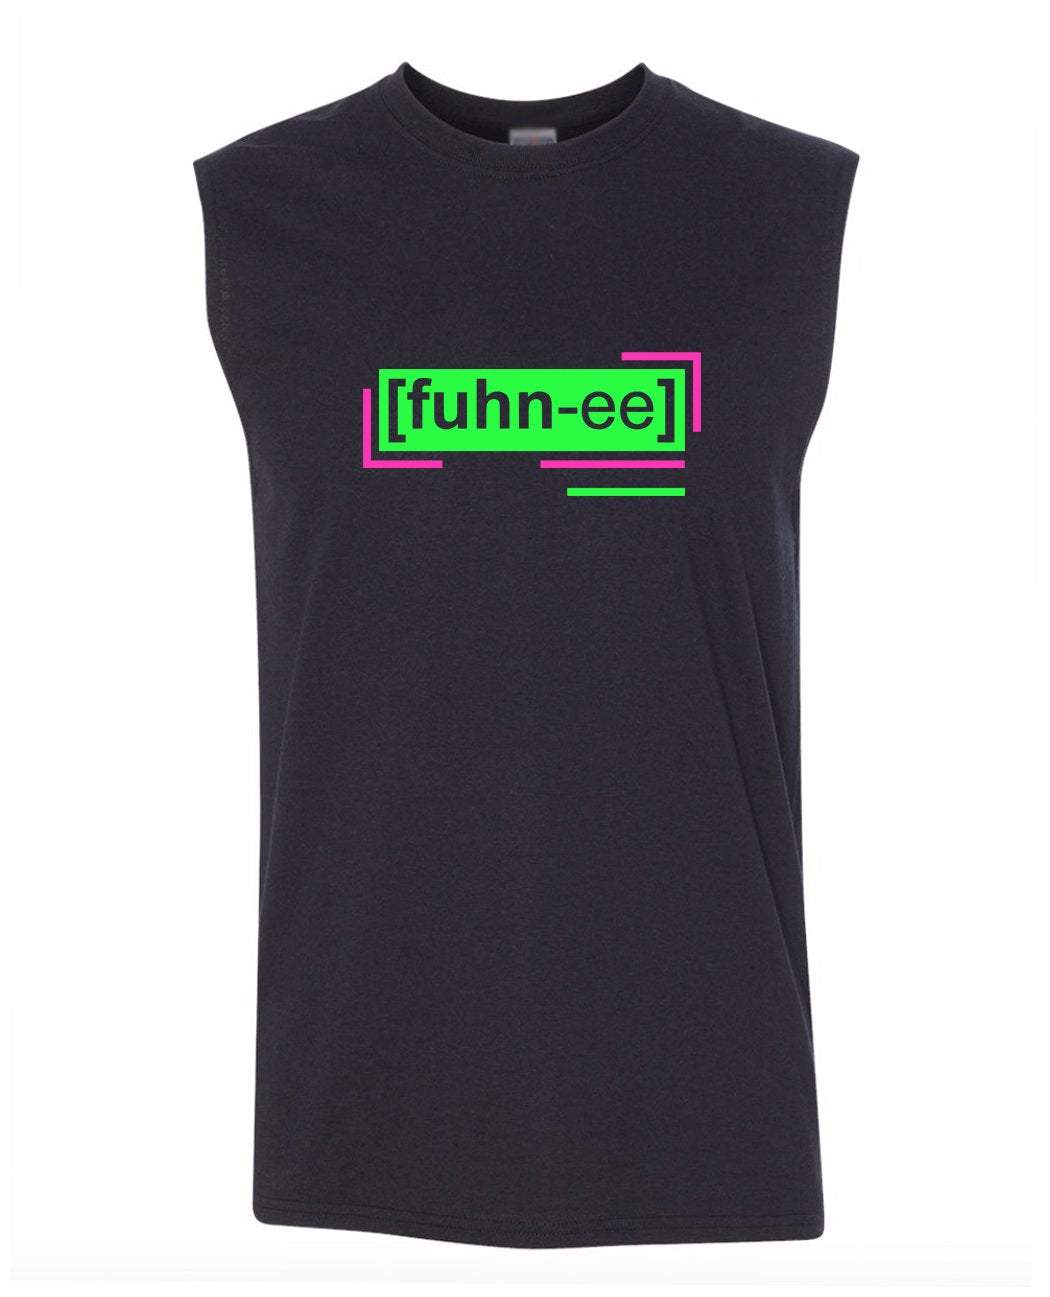 florescent green funny men's sleeveless tee tank top